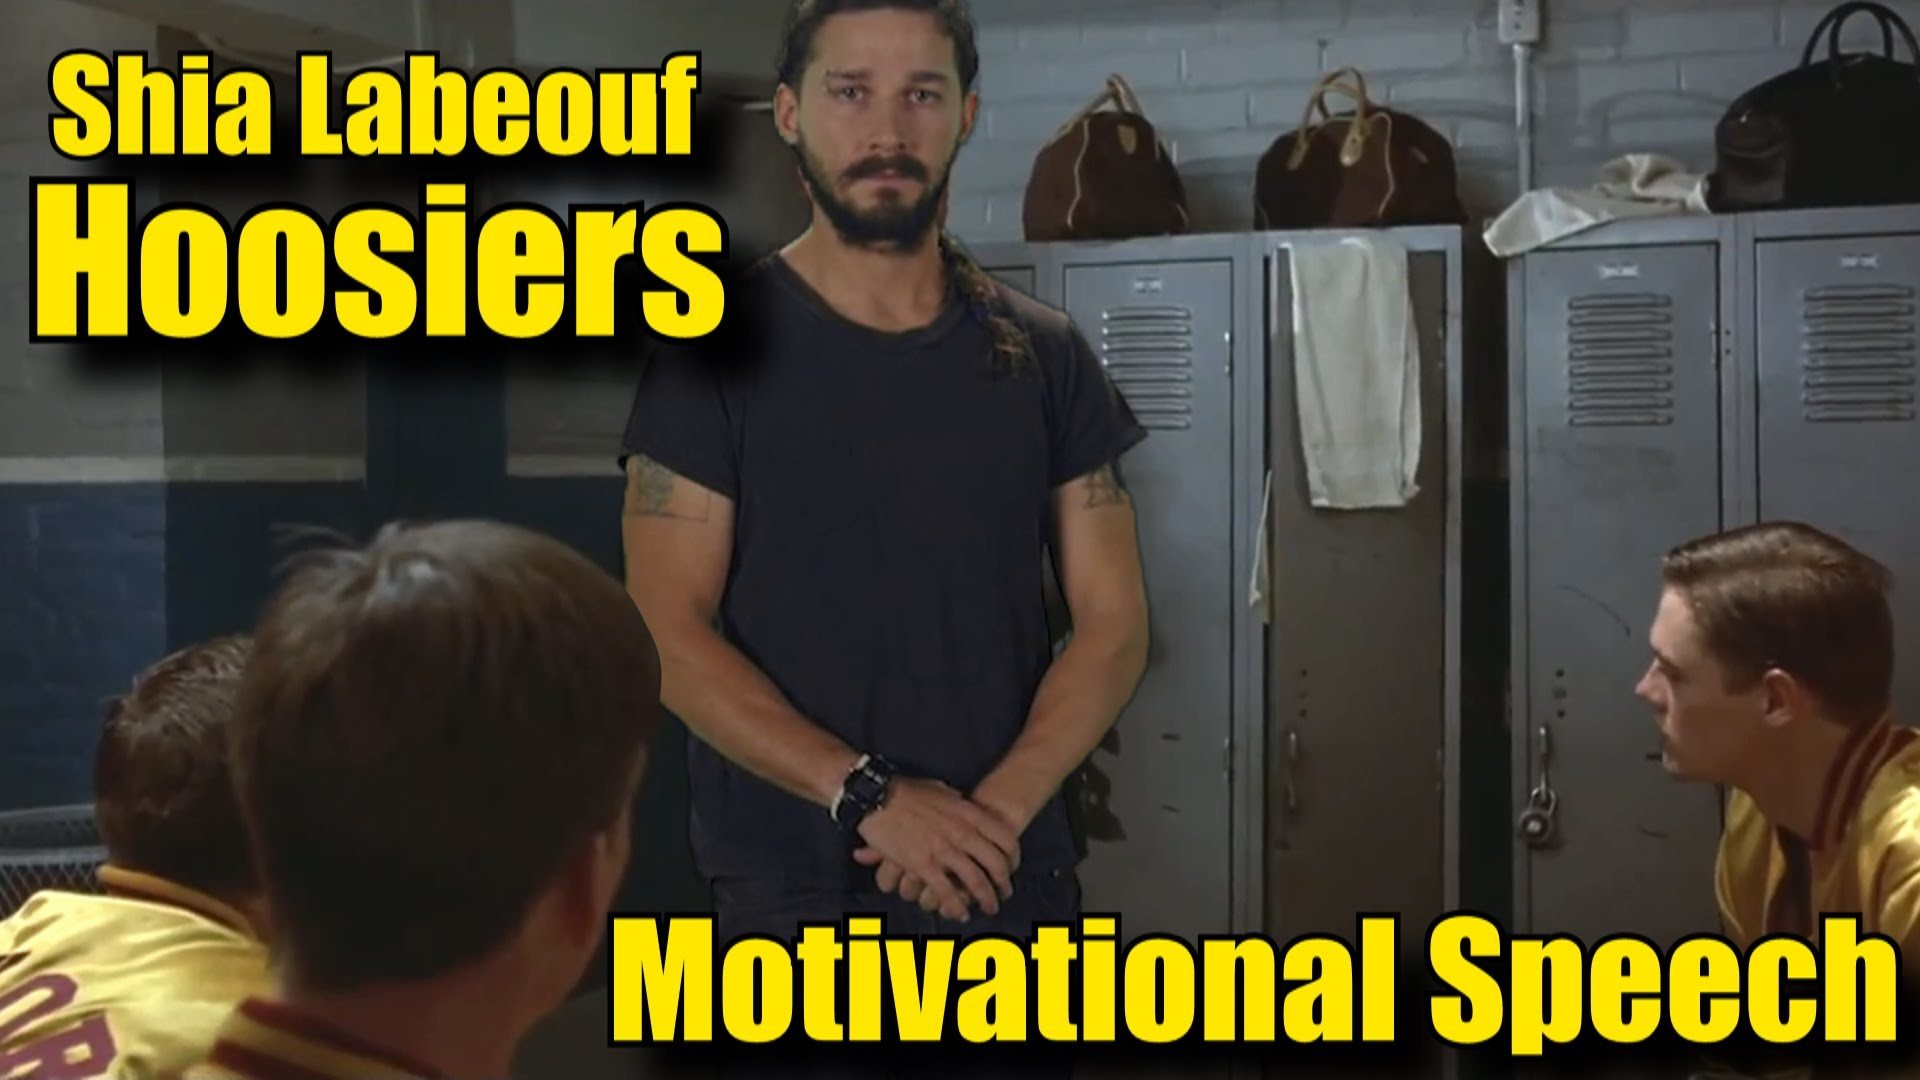 Shia LaBeouf Hoosiers Motivational Speech